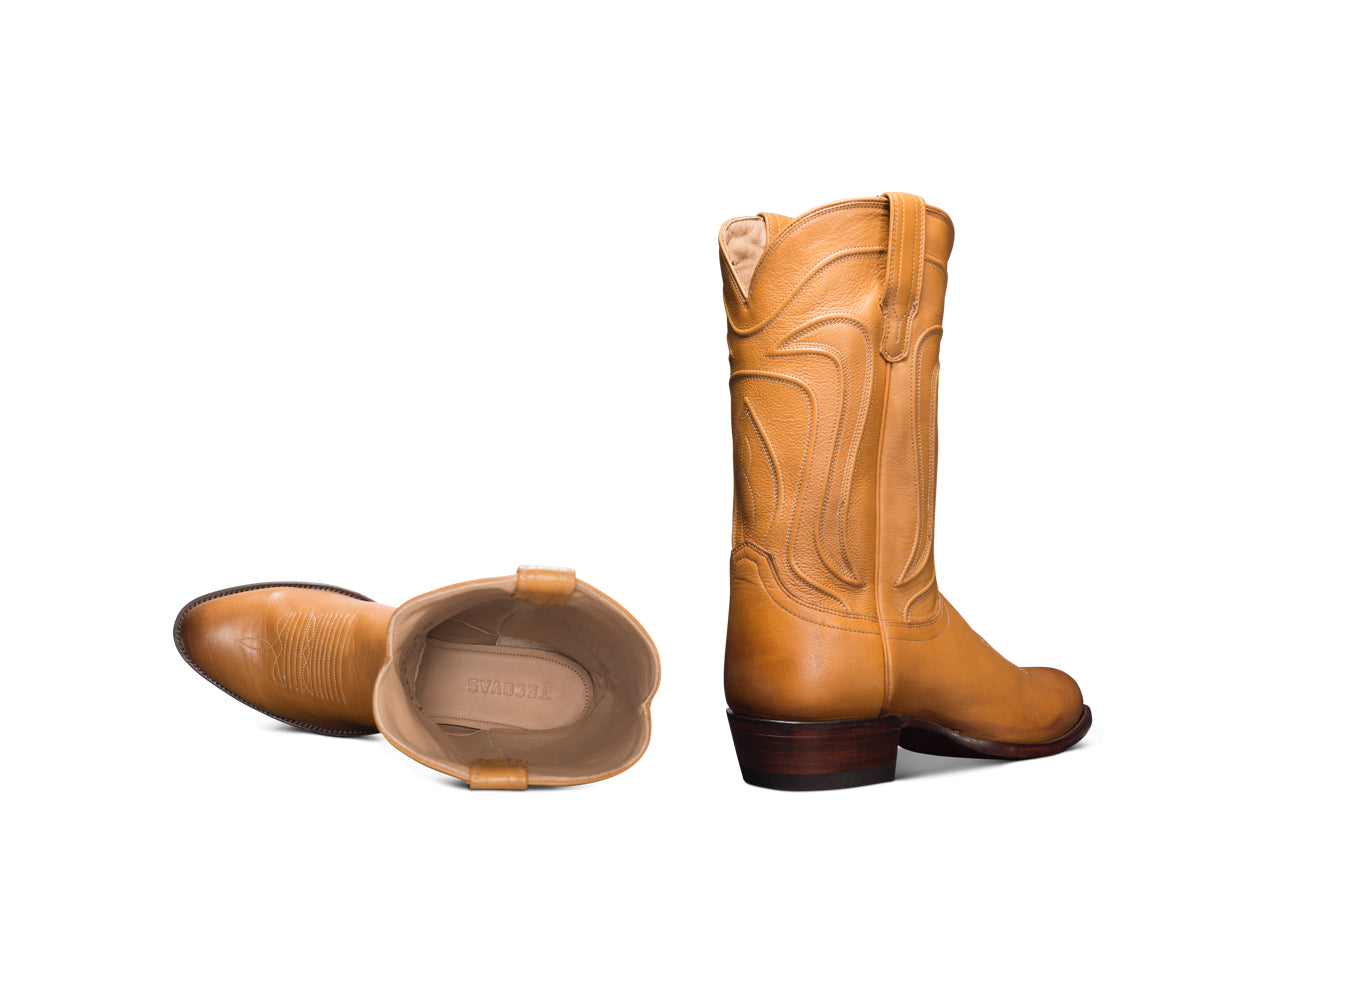 The Cartwright | A Classic Handmade Leather Cowboy Boot | Tecovas